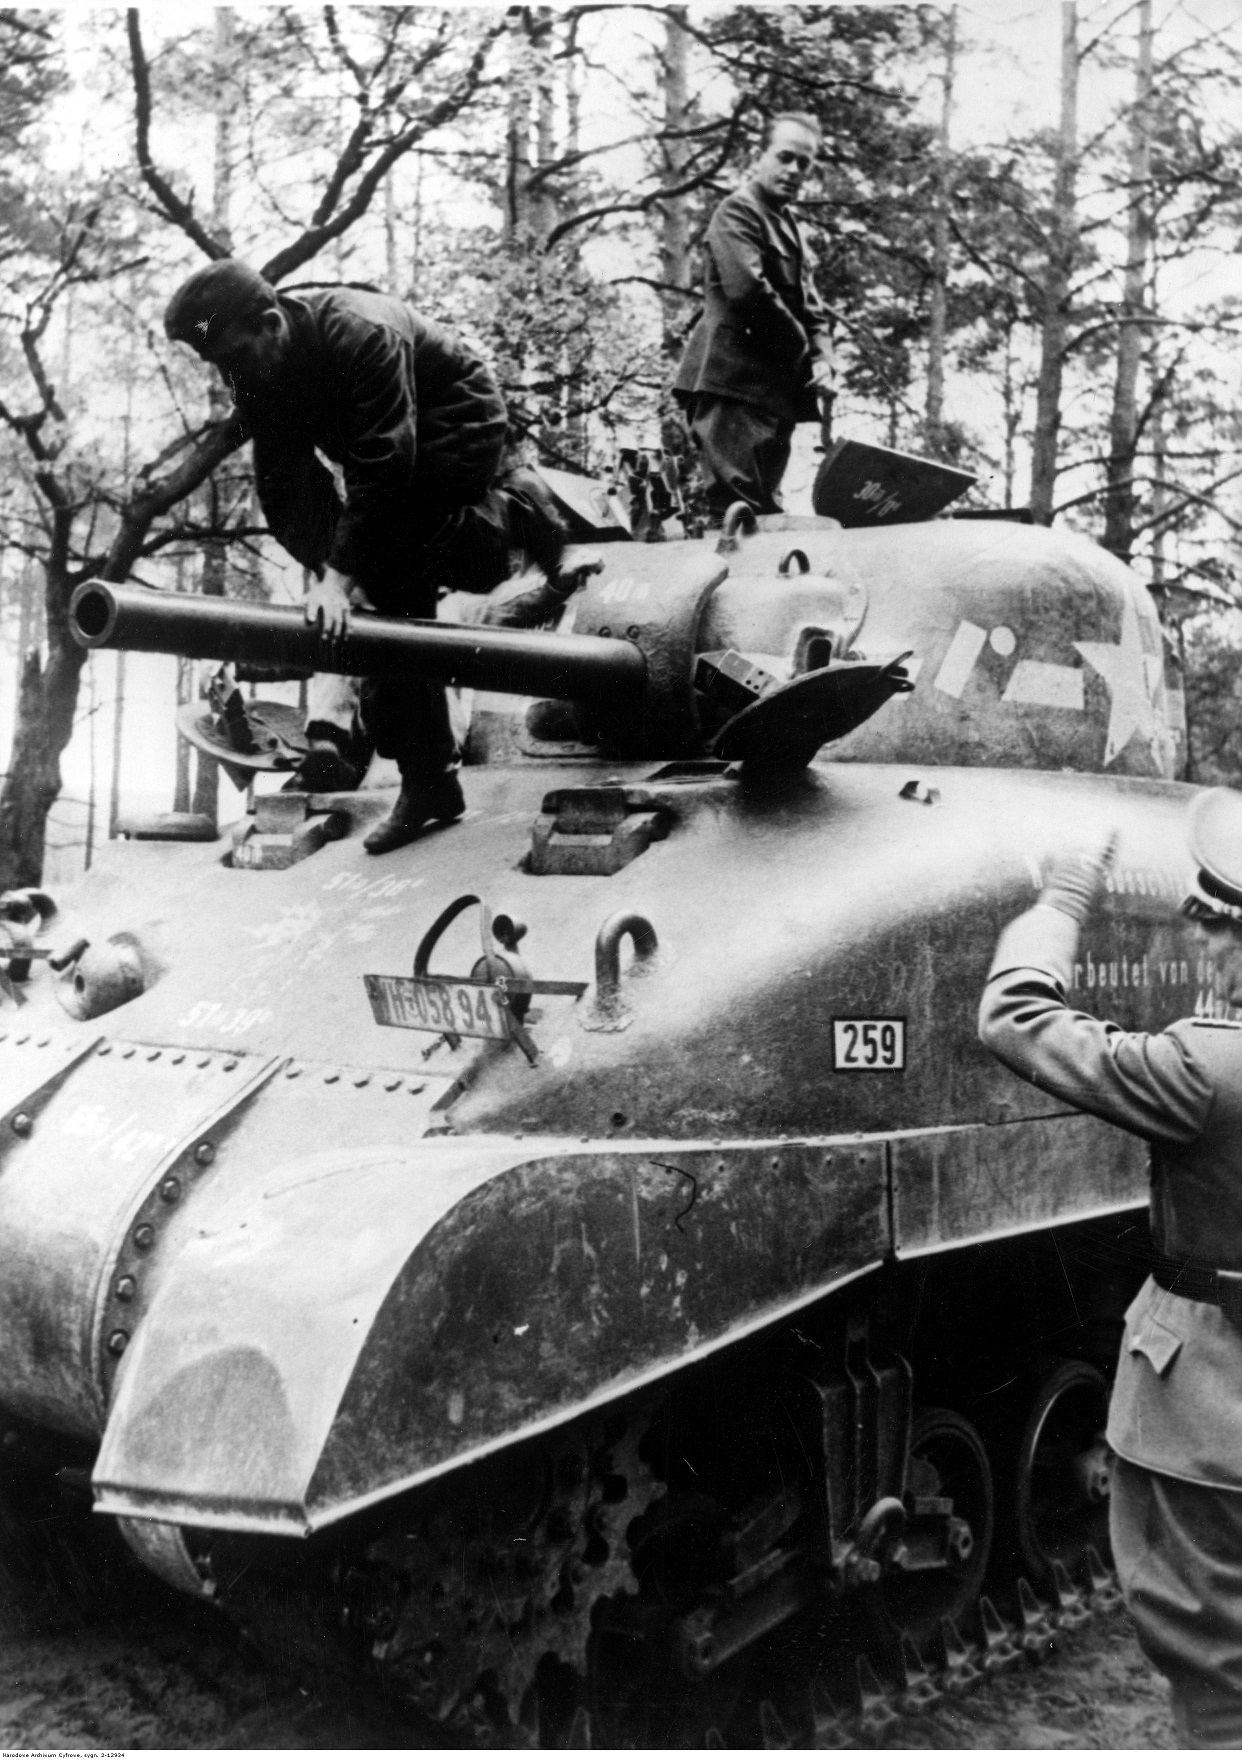 PIC 2 12934 Albert Speer inspects the tank 1943 06